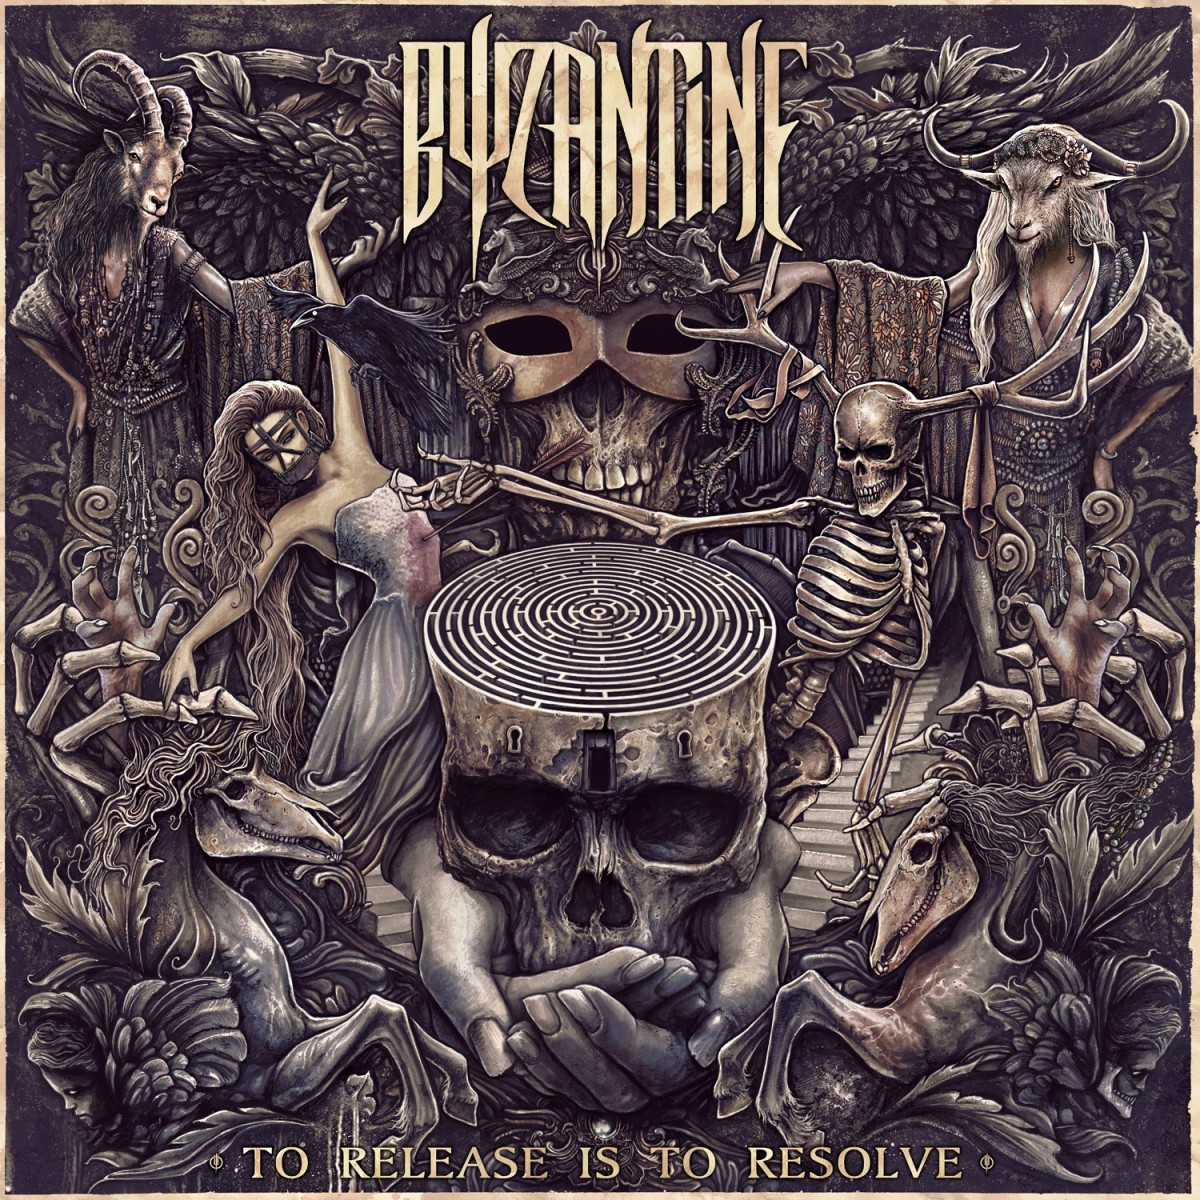 Album Review: Byzantine – TO RELEASE IS TO RESOLVE